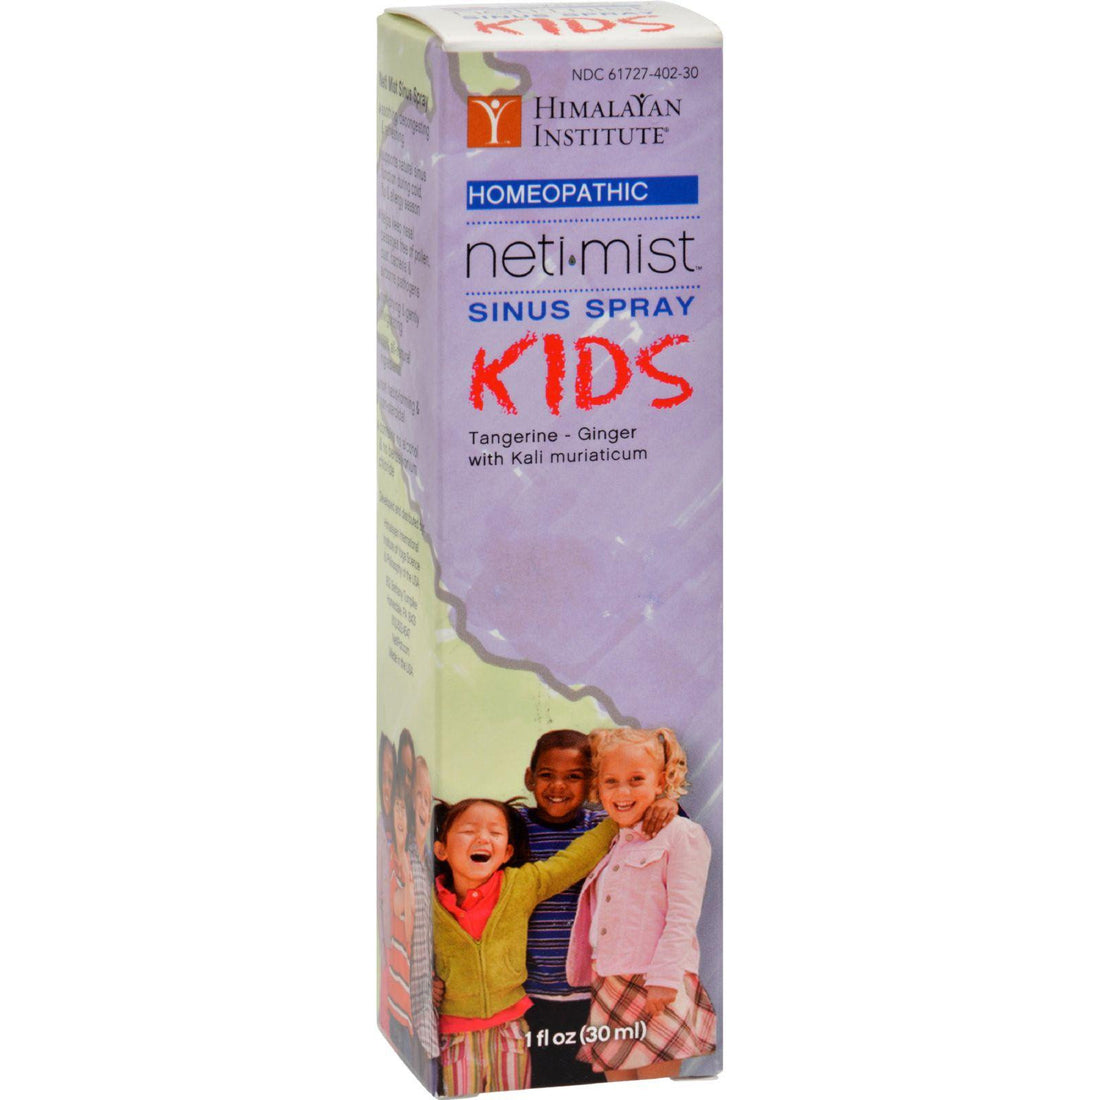 Mother Mantis: Himalayan Institute Neti Mist Kids Sinus Spray - 1 Fl Oz Himalayan Institute Press